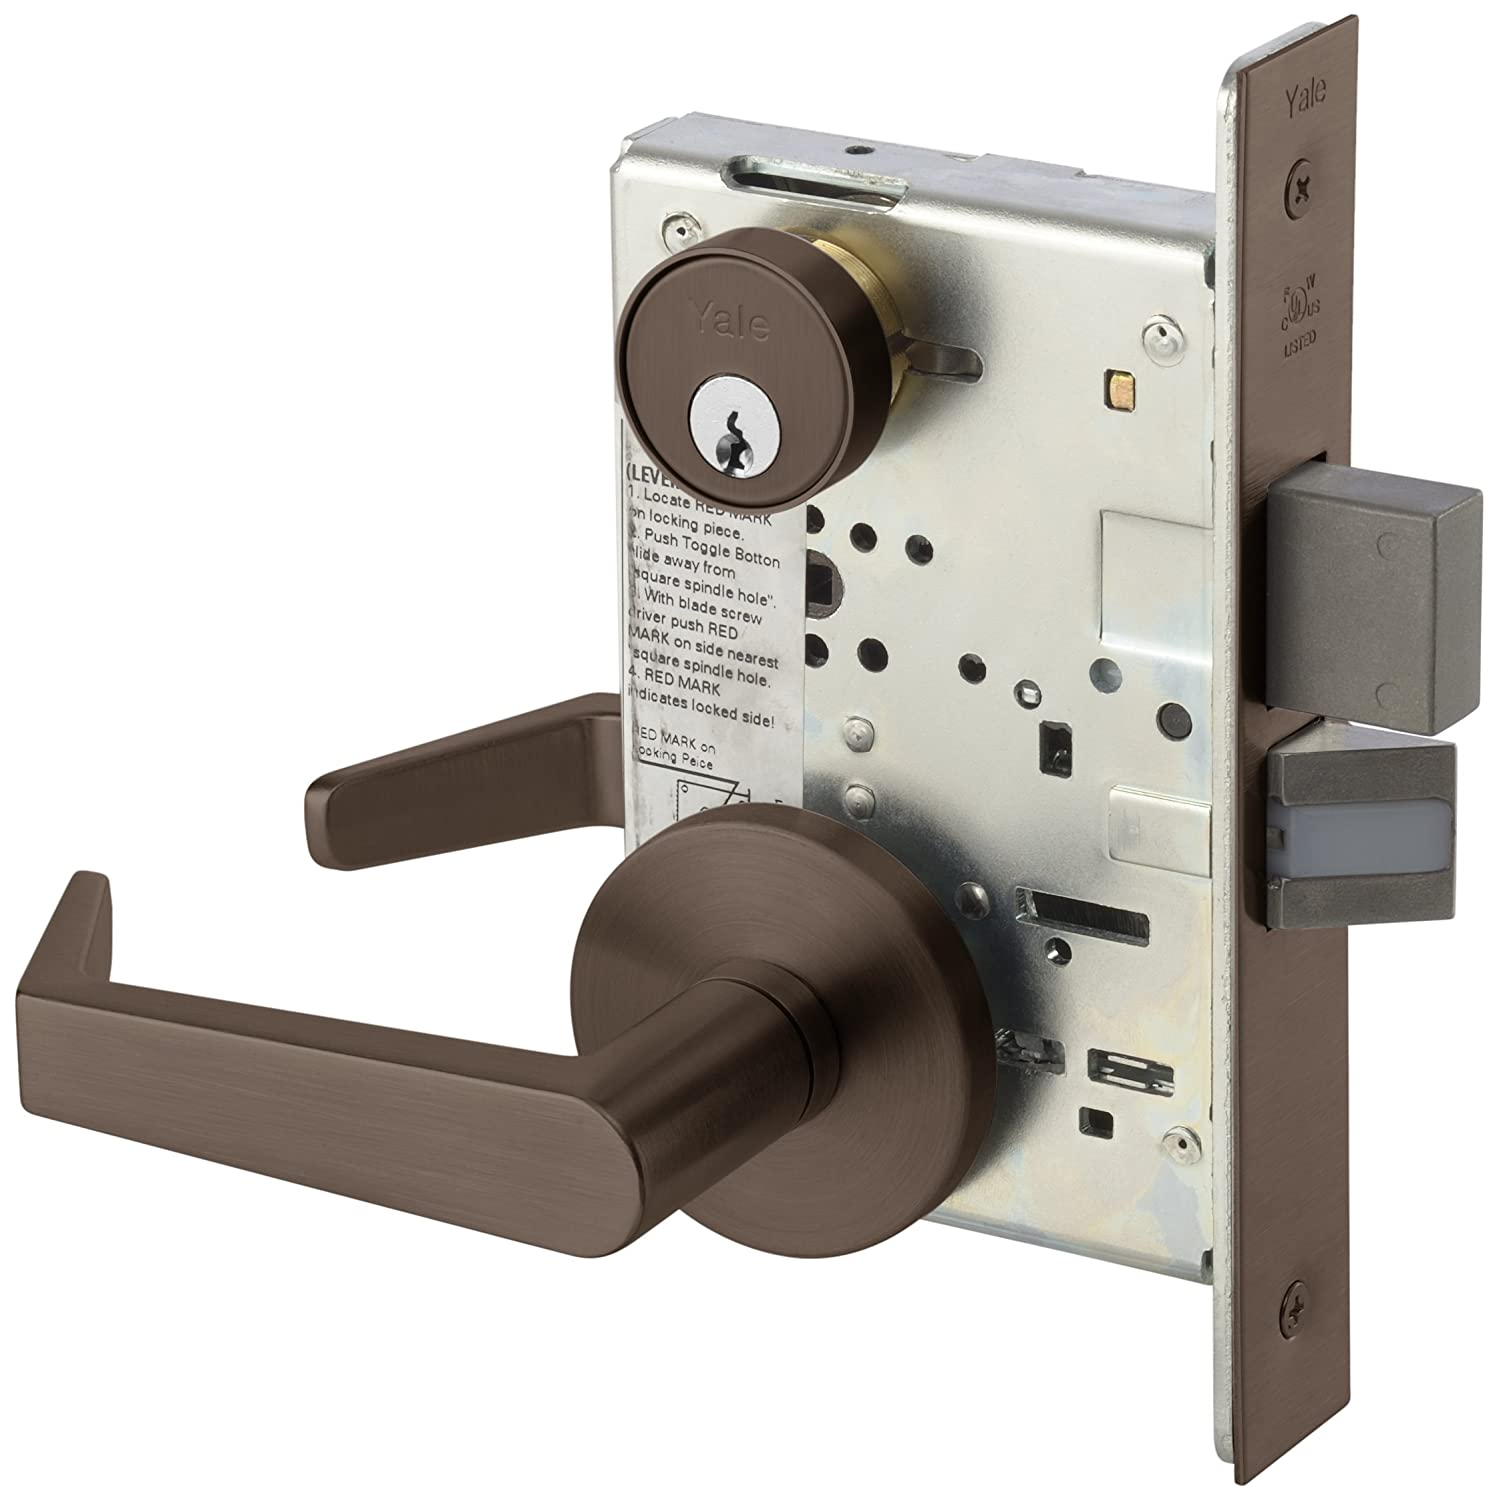 Yale 8822FL RH AUR 613E LESS CY 8800 Mortise Lockset, Grade 1, Rose Only, Dormitory or Exit with Deadbolt, RH Field Reversible, Cylinder Not Included, 613E Dark Satin Bronze